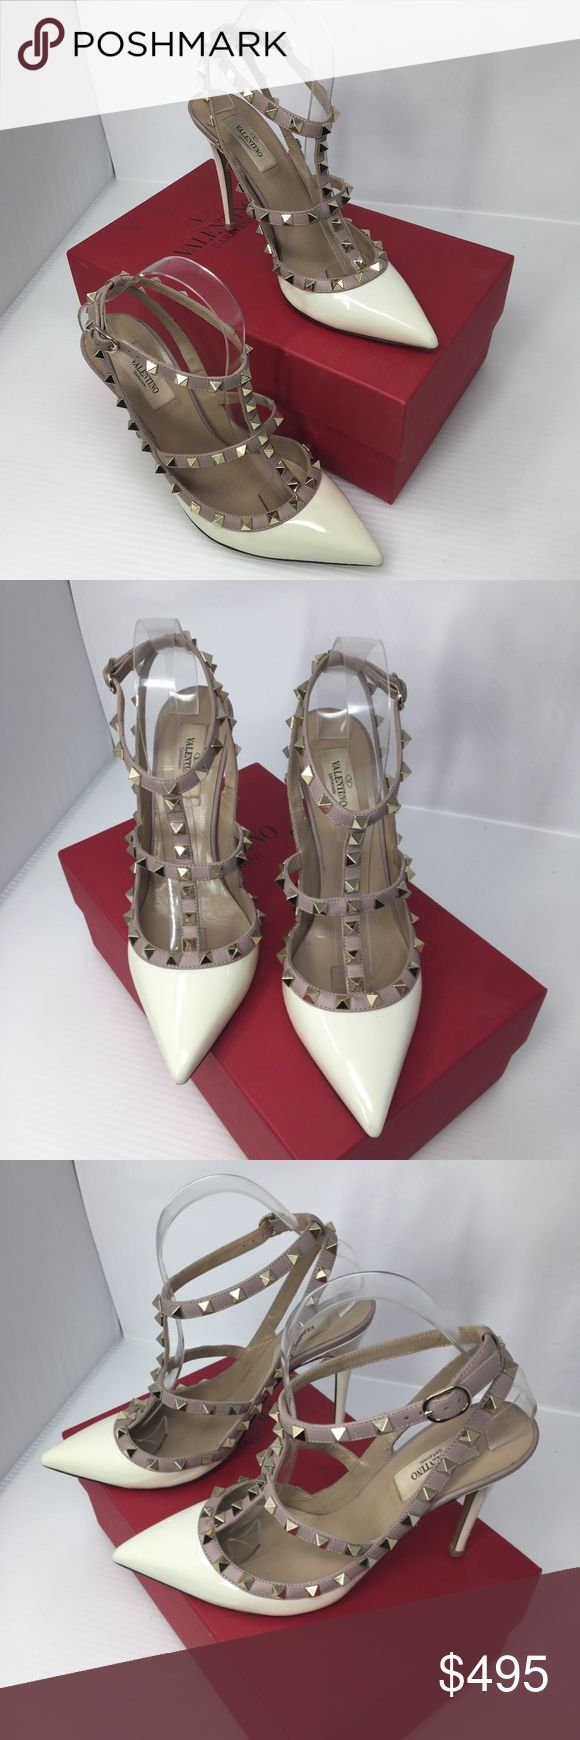 Valentino Ivory & Poudre Rockstud T Strap Heels Beautiful pair!!! I just had the soles and heel points reconditioned. Sale includes the Valentino box shown. Size 39.5. Valentino Shoes Heels